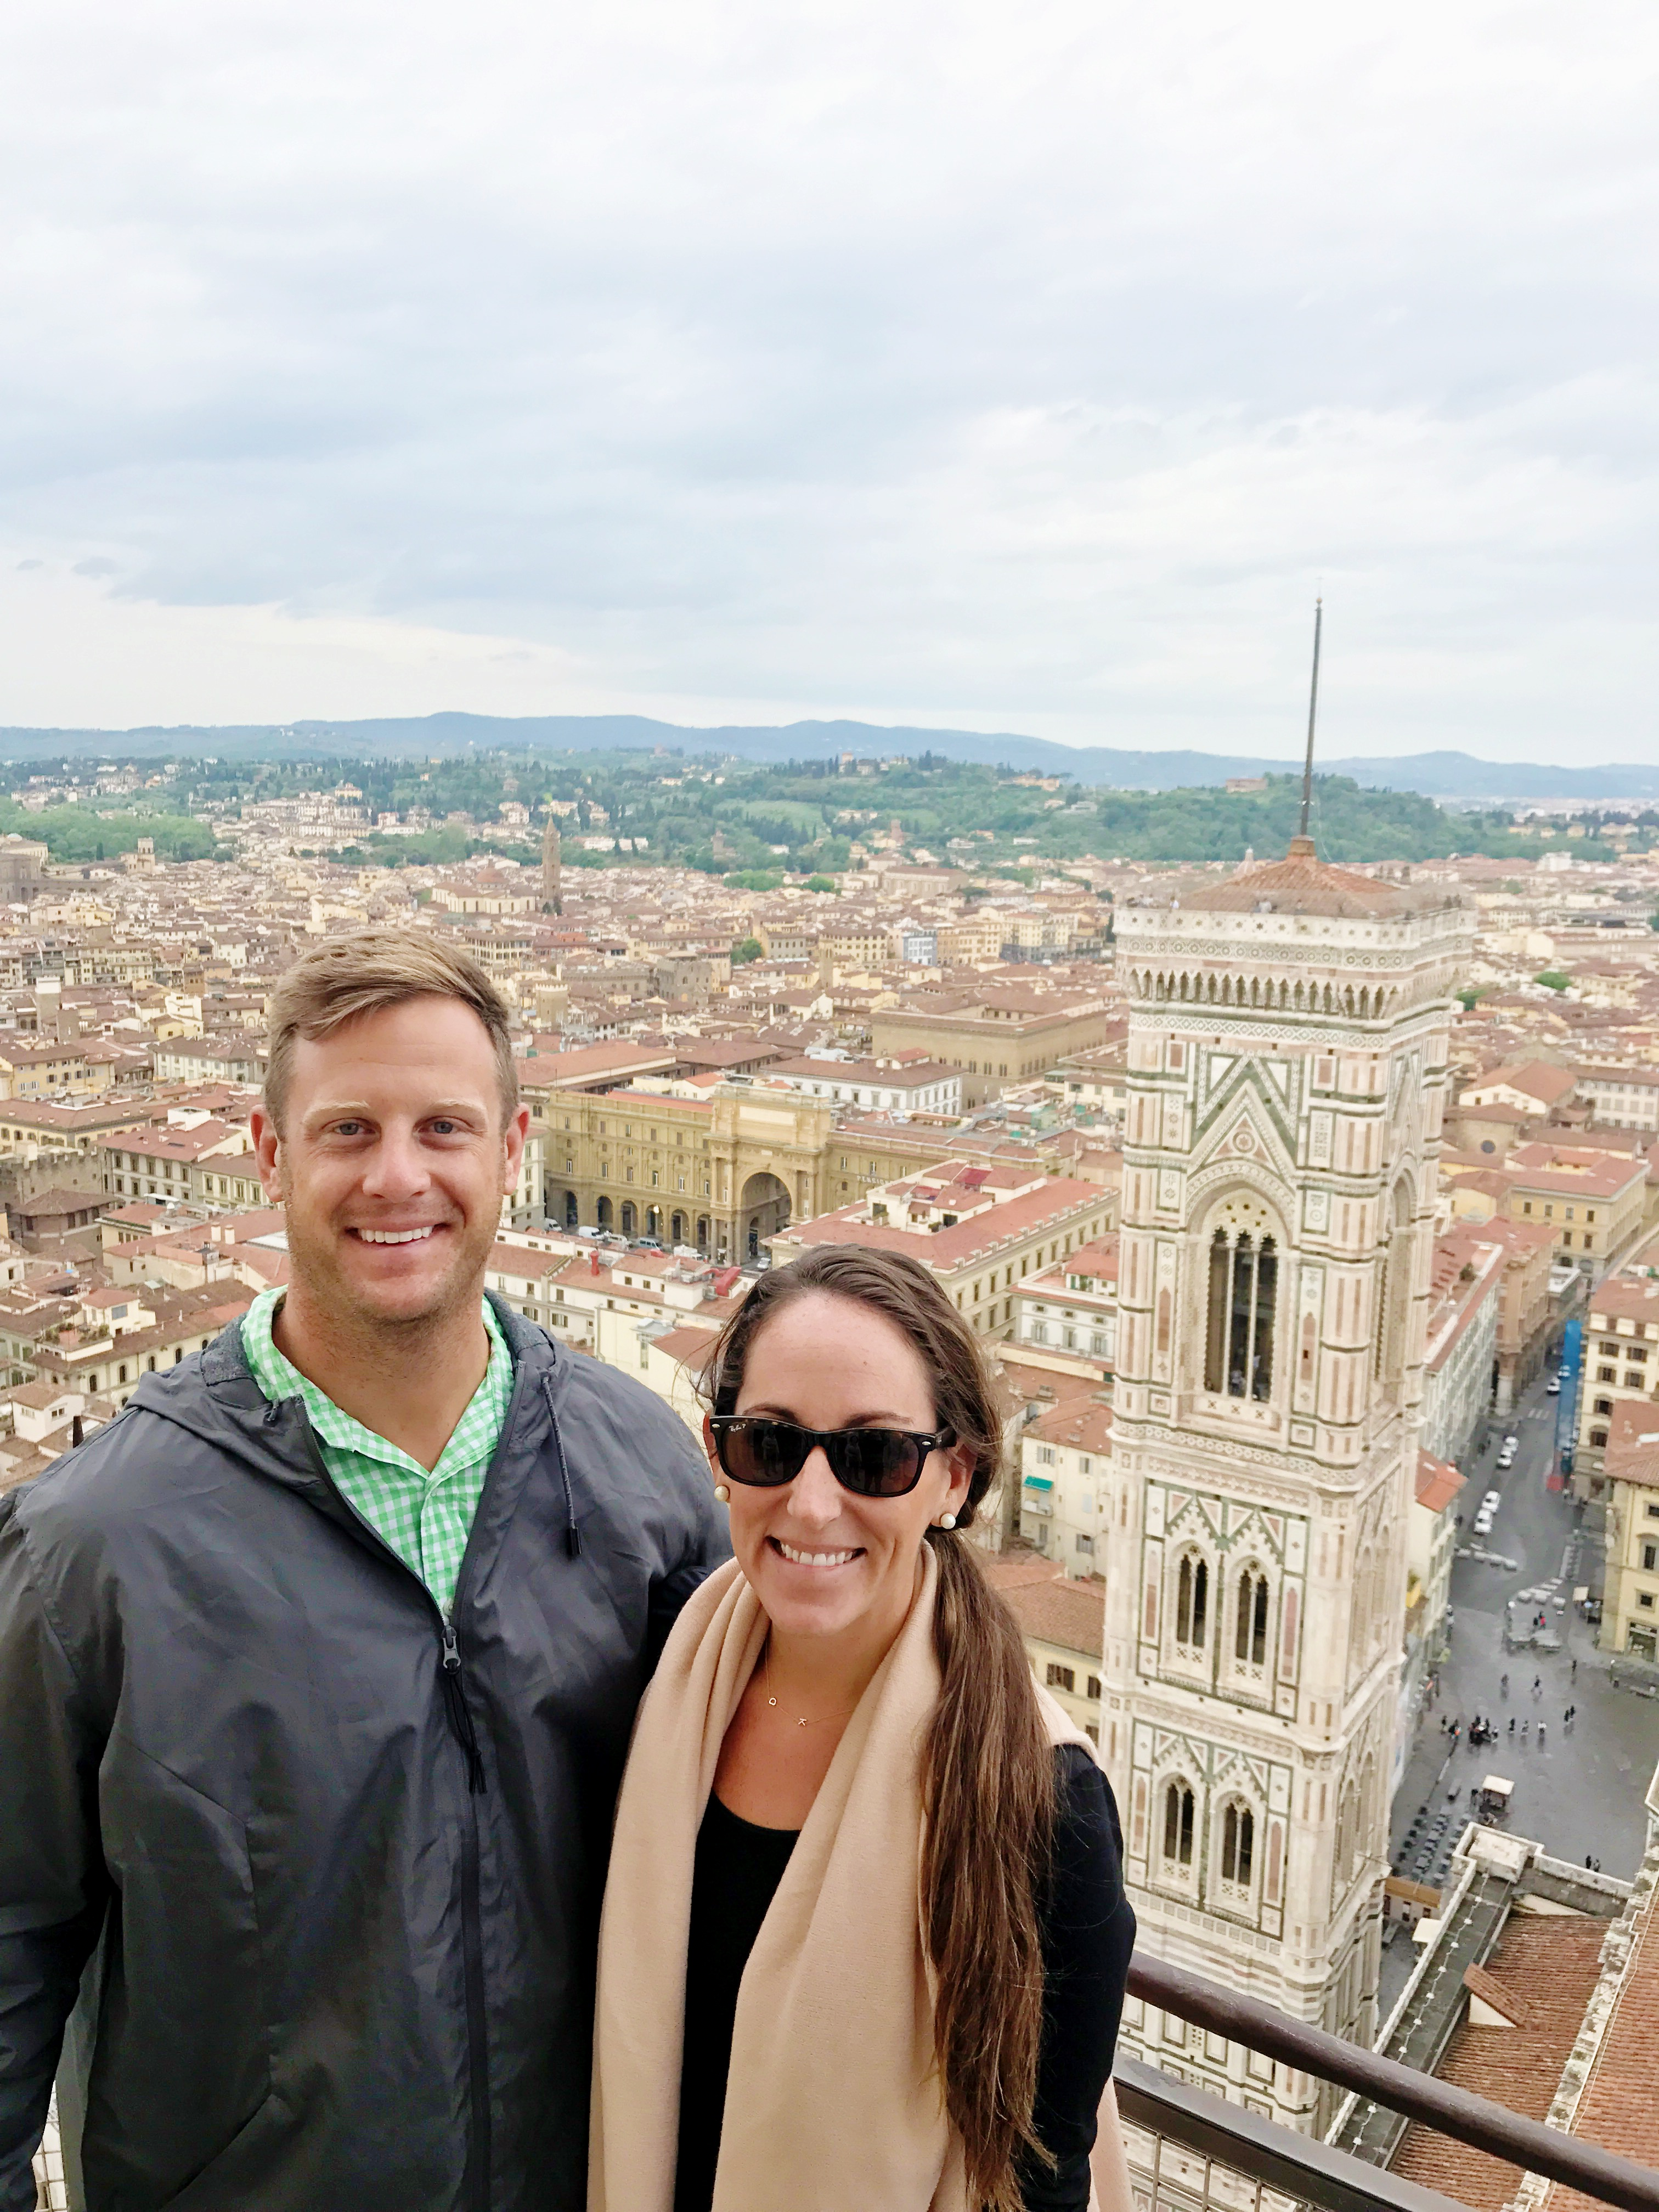 Italy On $100 A Day - Budget Travel Europe - Italy On A Budget - How To Travel On A Budget - Budget Travel Tips - Italy Travel Tips - Florence - Venice - Rome - Milan - Travel Blog - Communikait by Kait Hanson - Europe on a budget